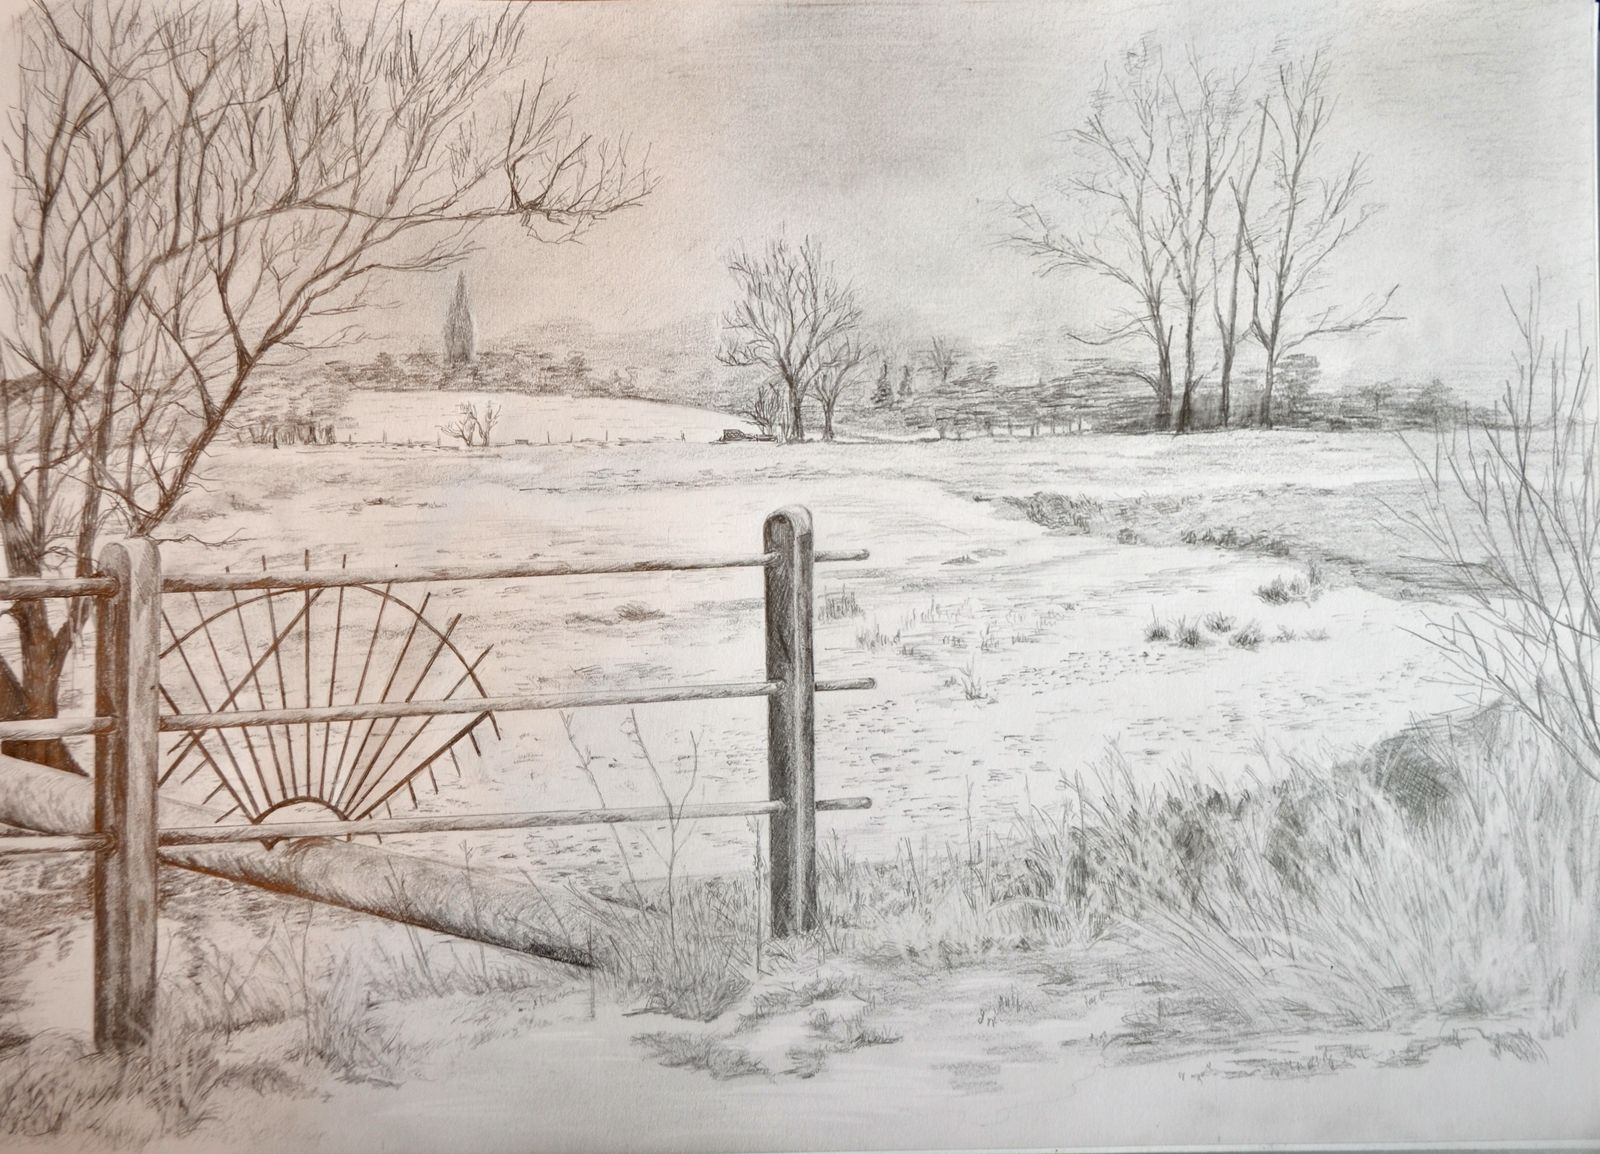 Pencil and paper on pinterest landscape drawings pencil for What is landscape drawing